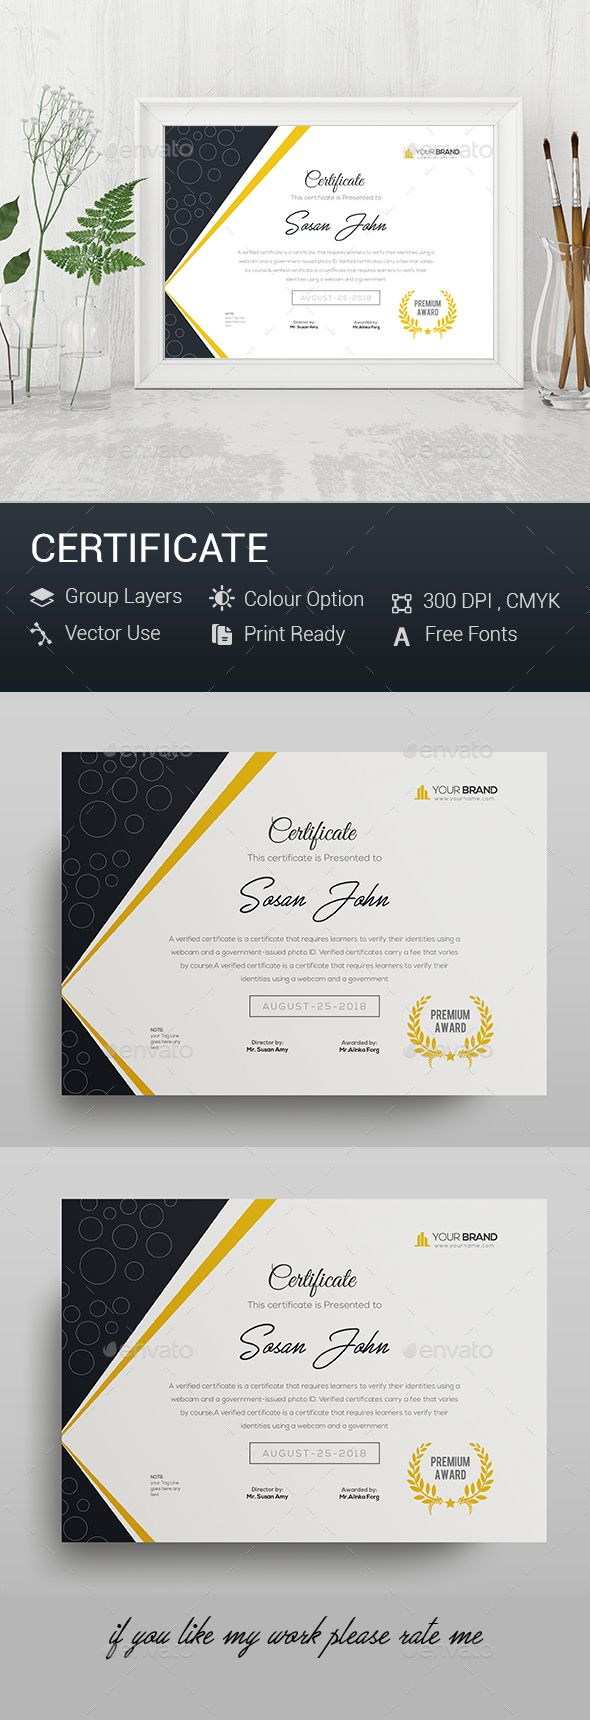 145 best certificate templates images on pinterest certificate template yelopaper Choice Image